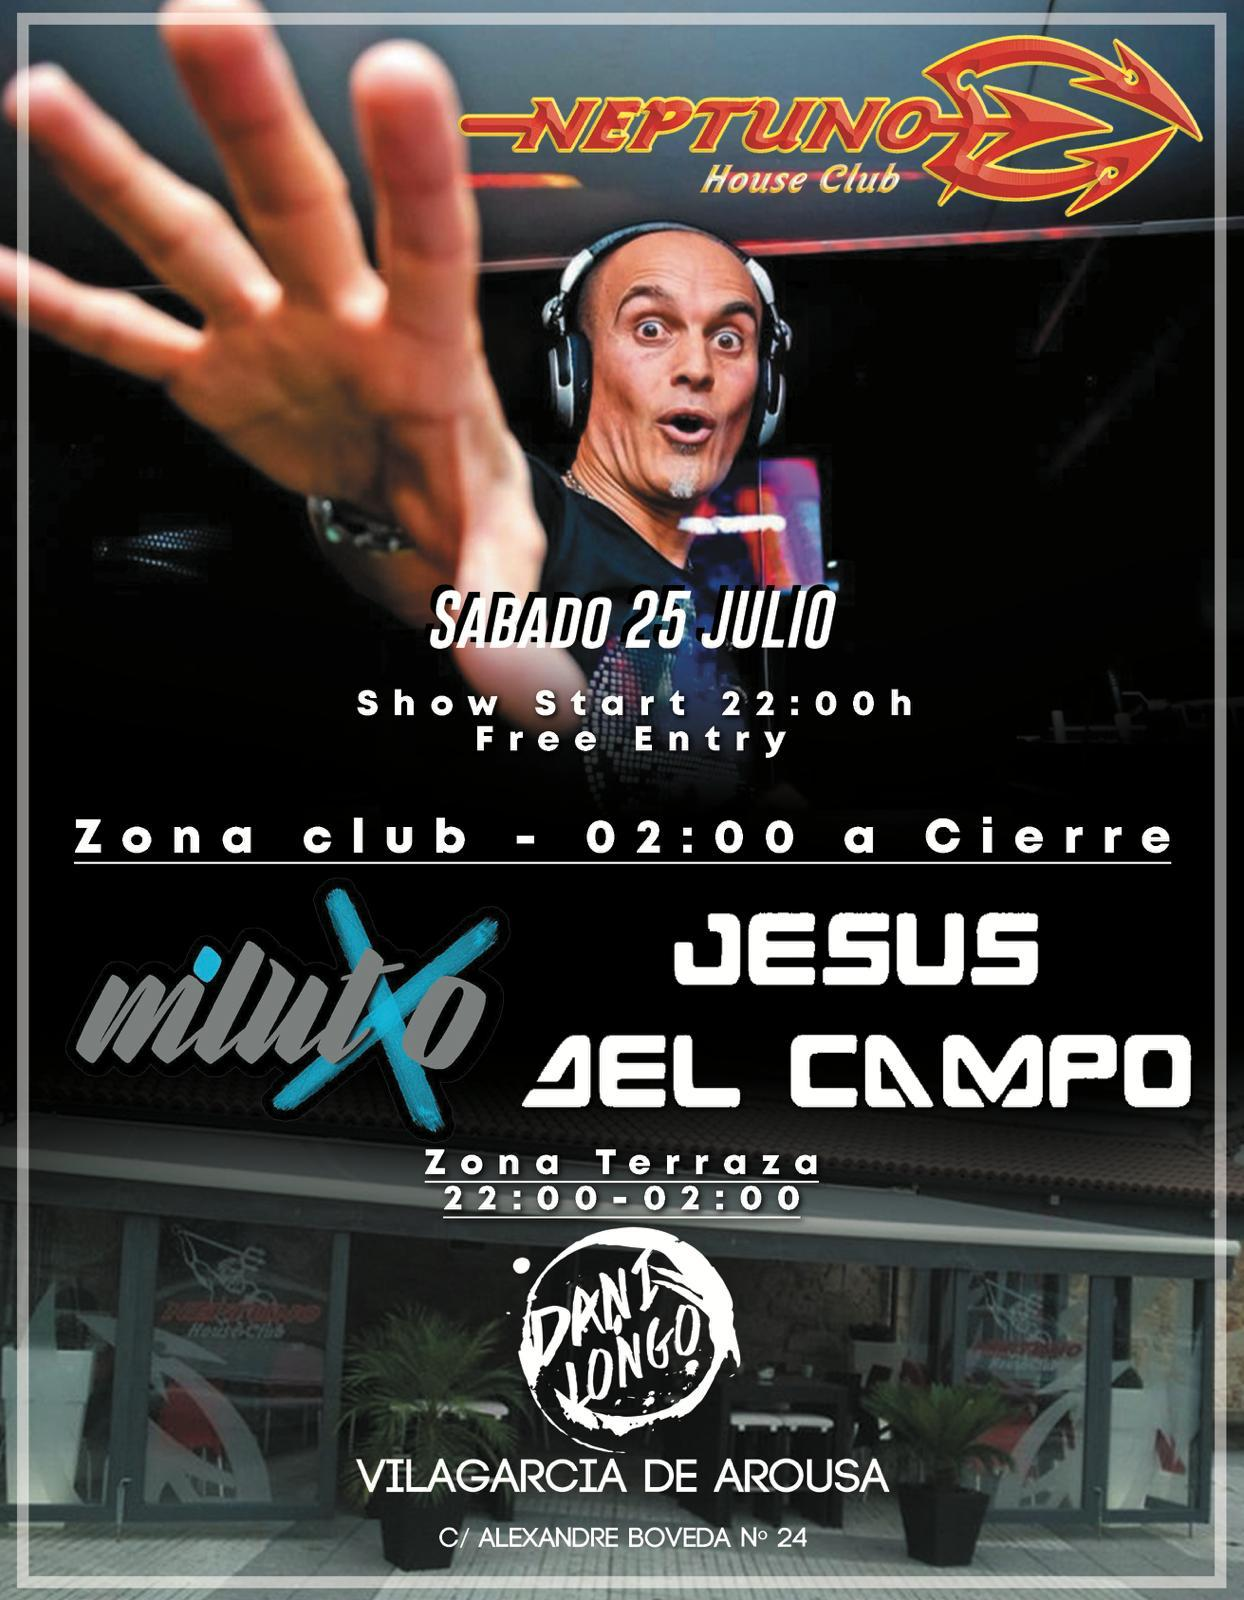 flyer Neptuno club 25 jul 2020 jesus del campo